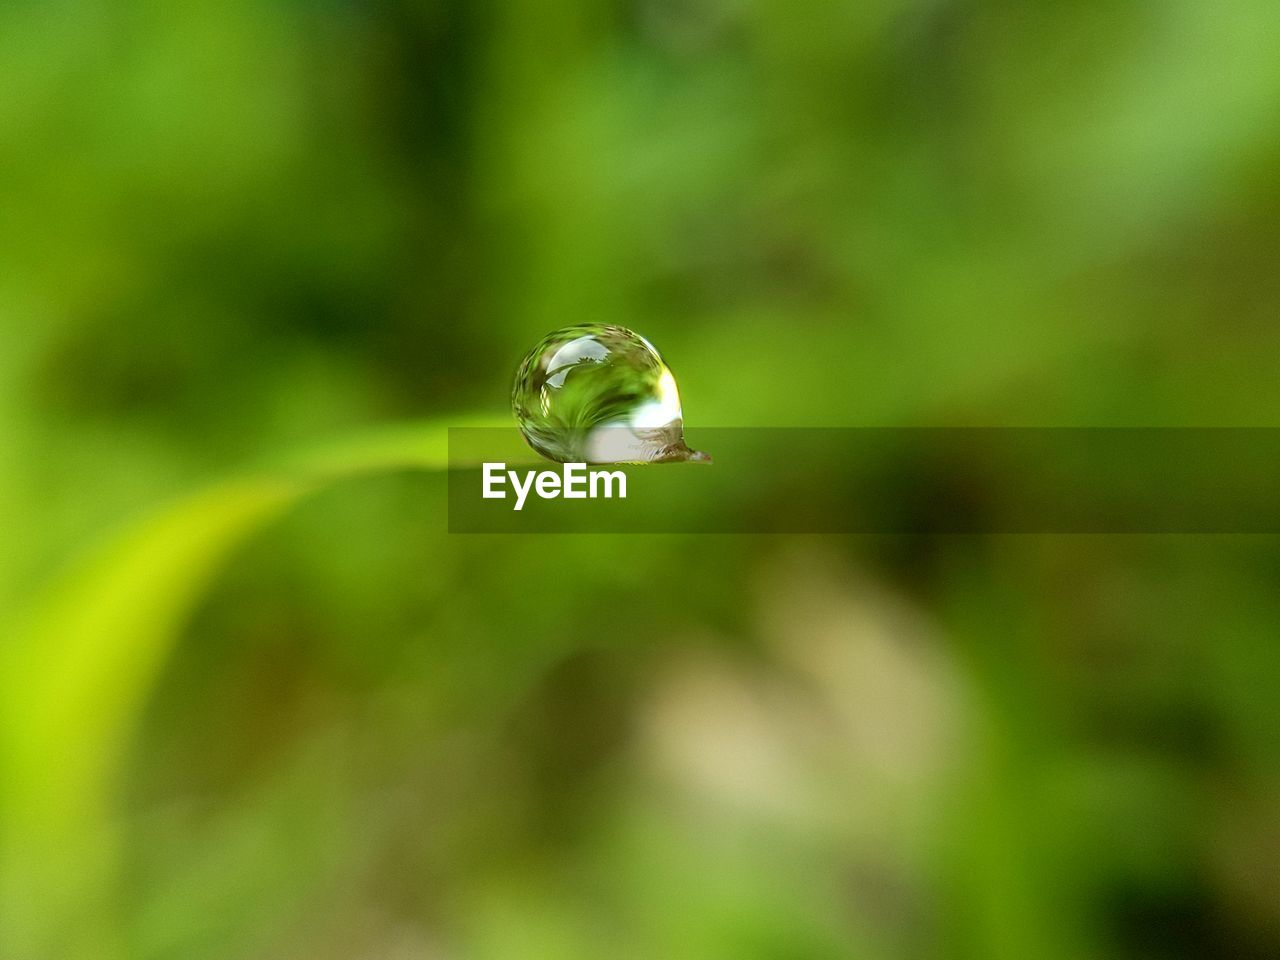 nature, fragility, no people, plant, growth, close-up, outdoors, day, drop, focus on foreground, beauty in nature, green color, leaf, water, freshness, animal themes